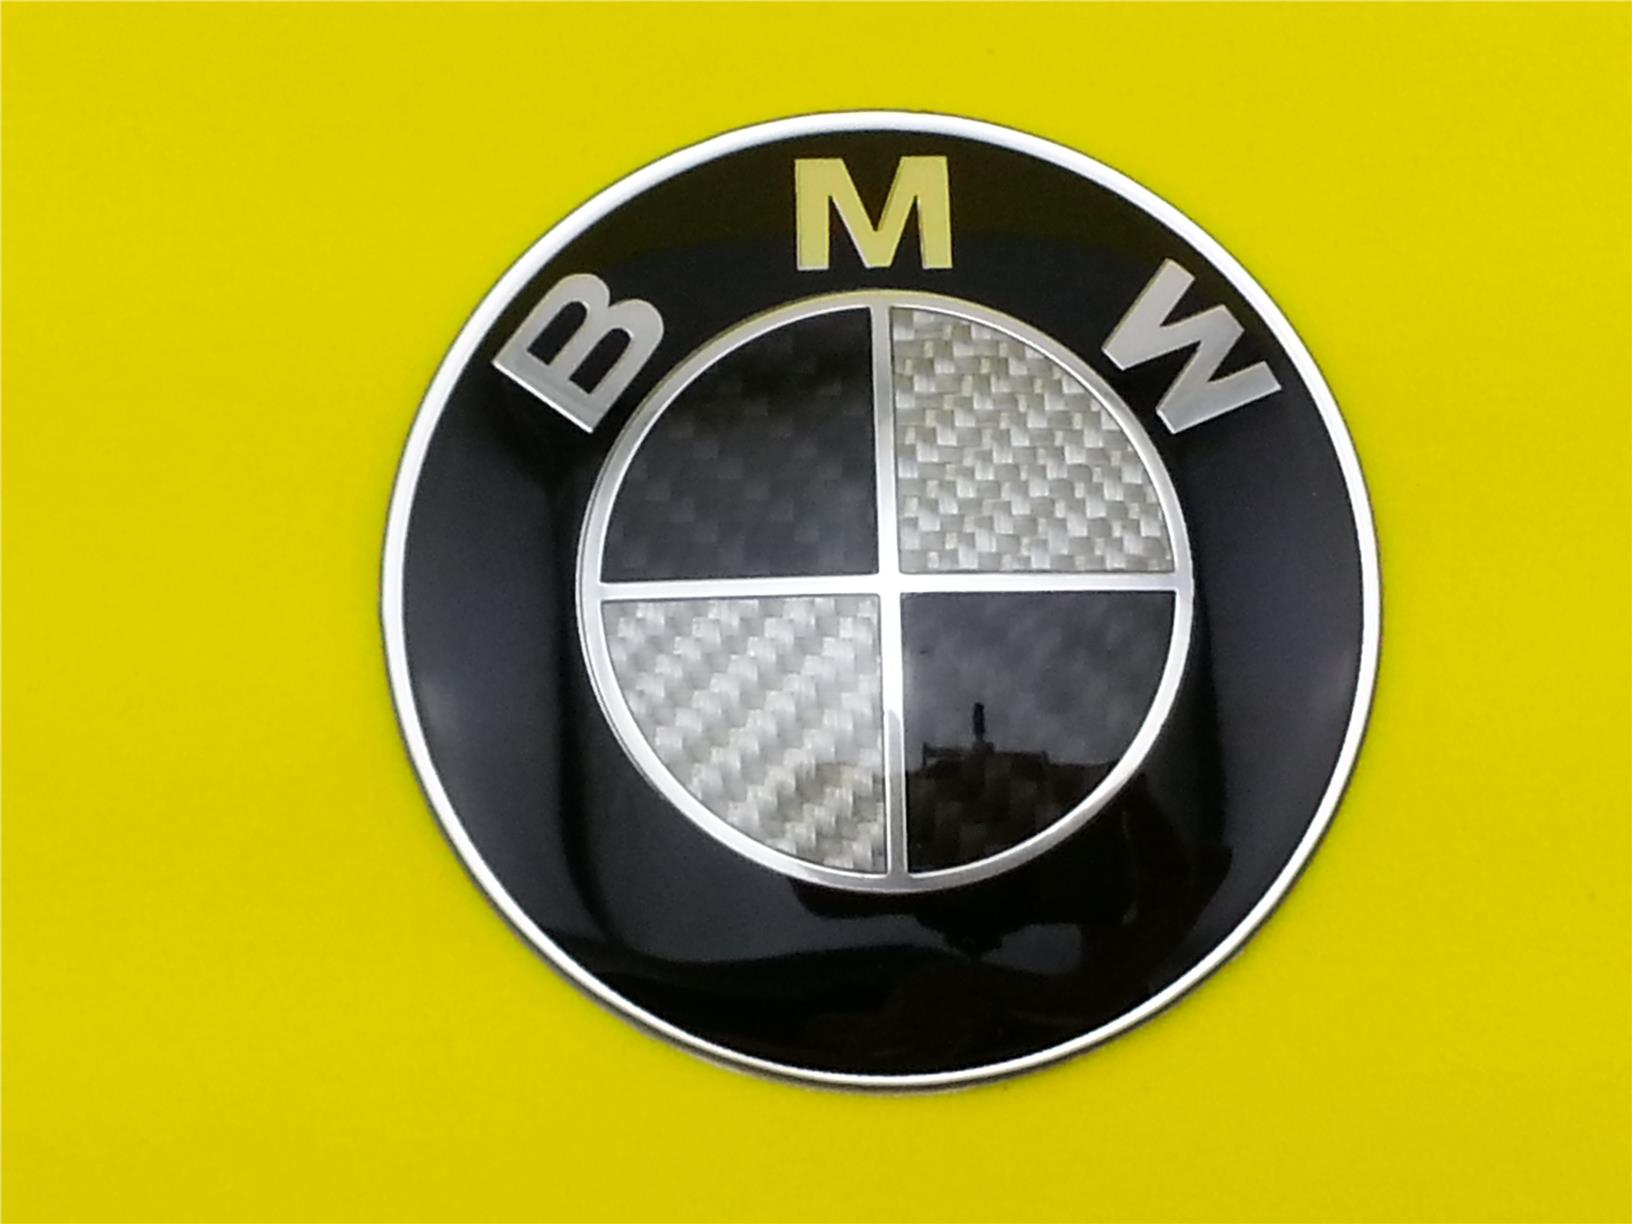 High Quality Black & White CARBON BMW EMBLEM LOGO FRONT OR REAR